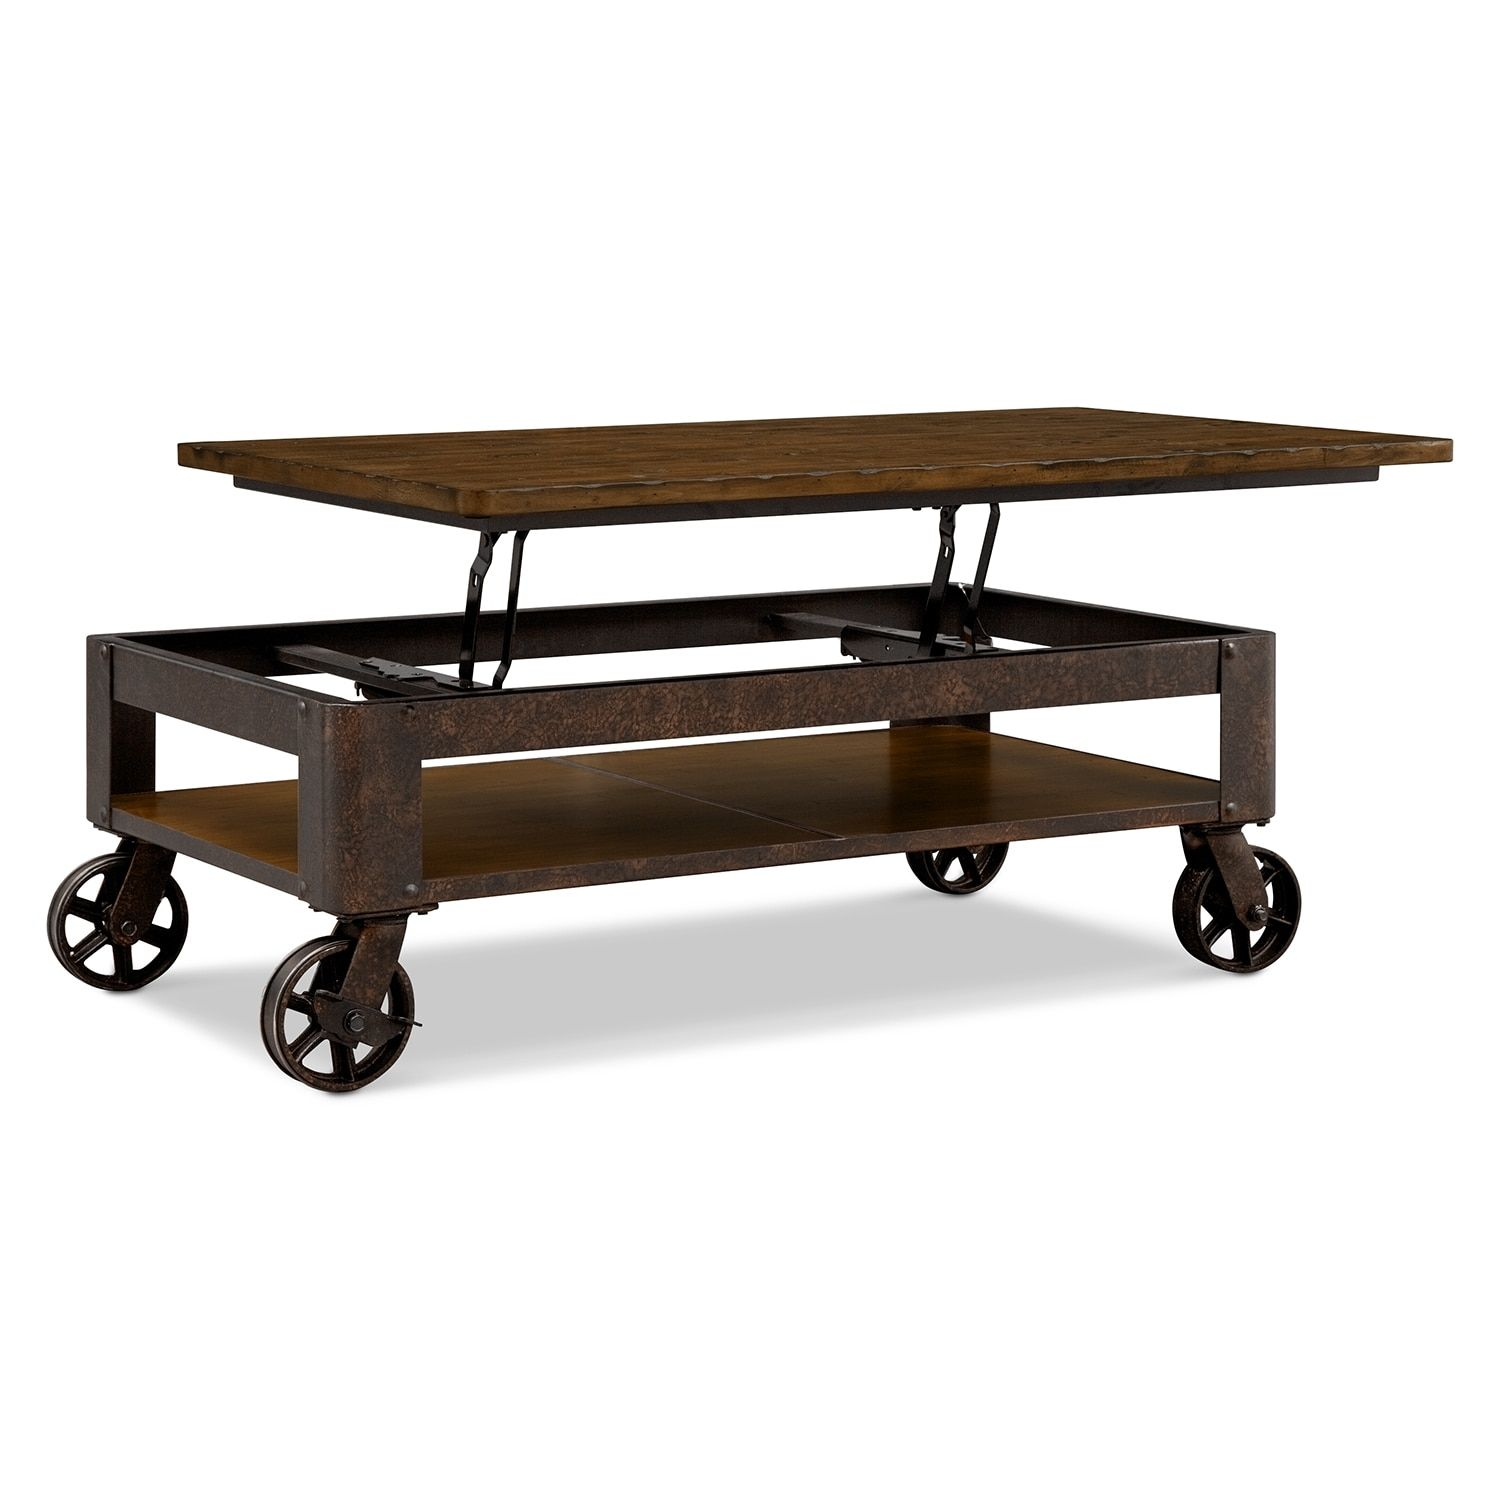 Shortline Lift Top Coffee Table Adjustable Coffee Table Coffee Table Wood Coffee Table With Wheels